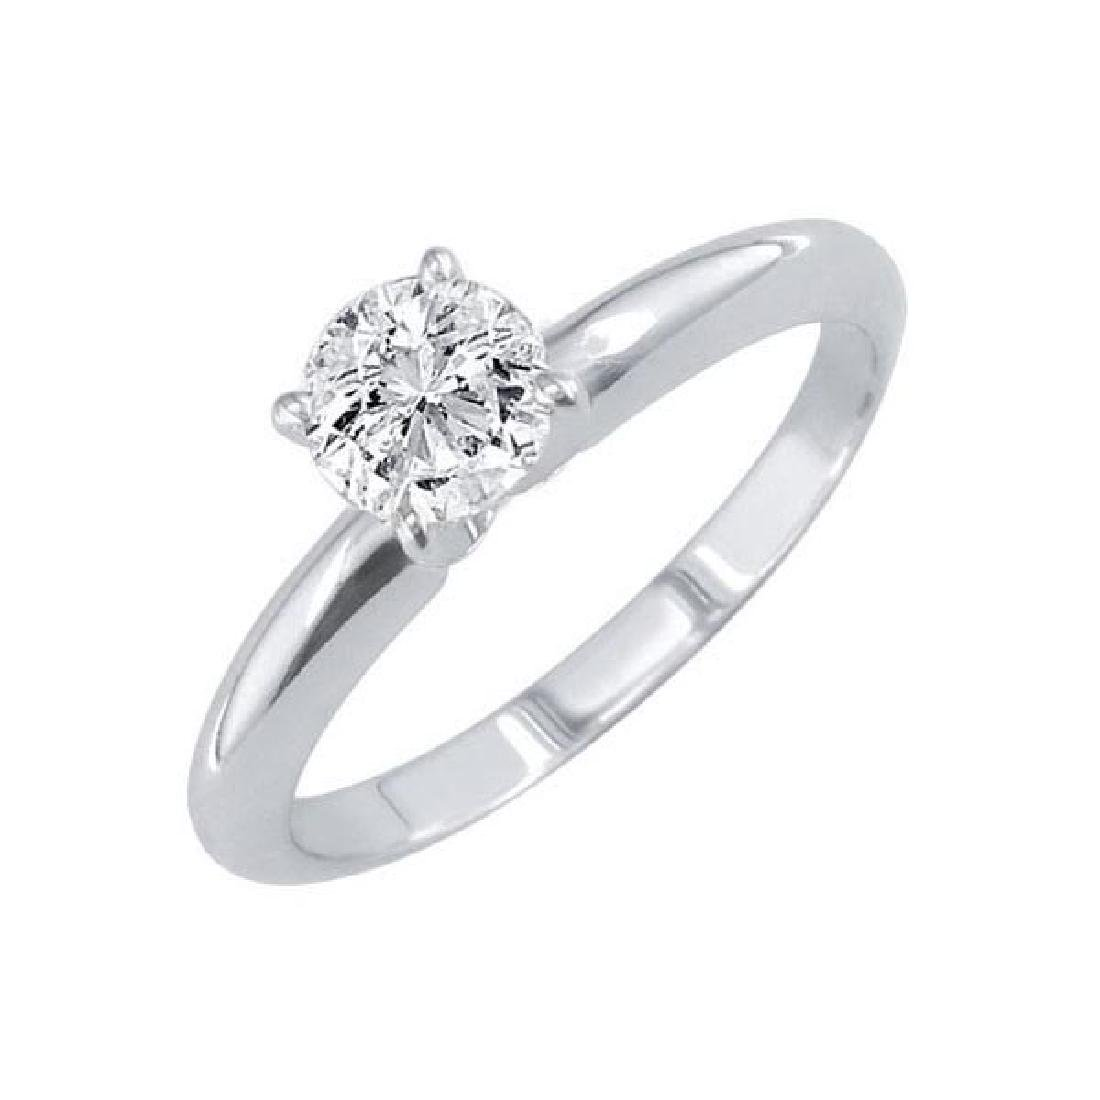 Certified 1.18 CTW Round Diamond Solitaire 14k Ring I/I